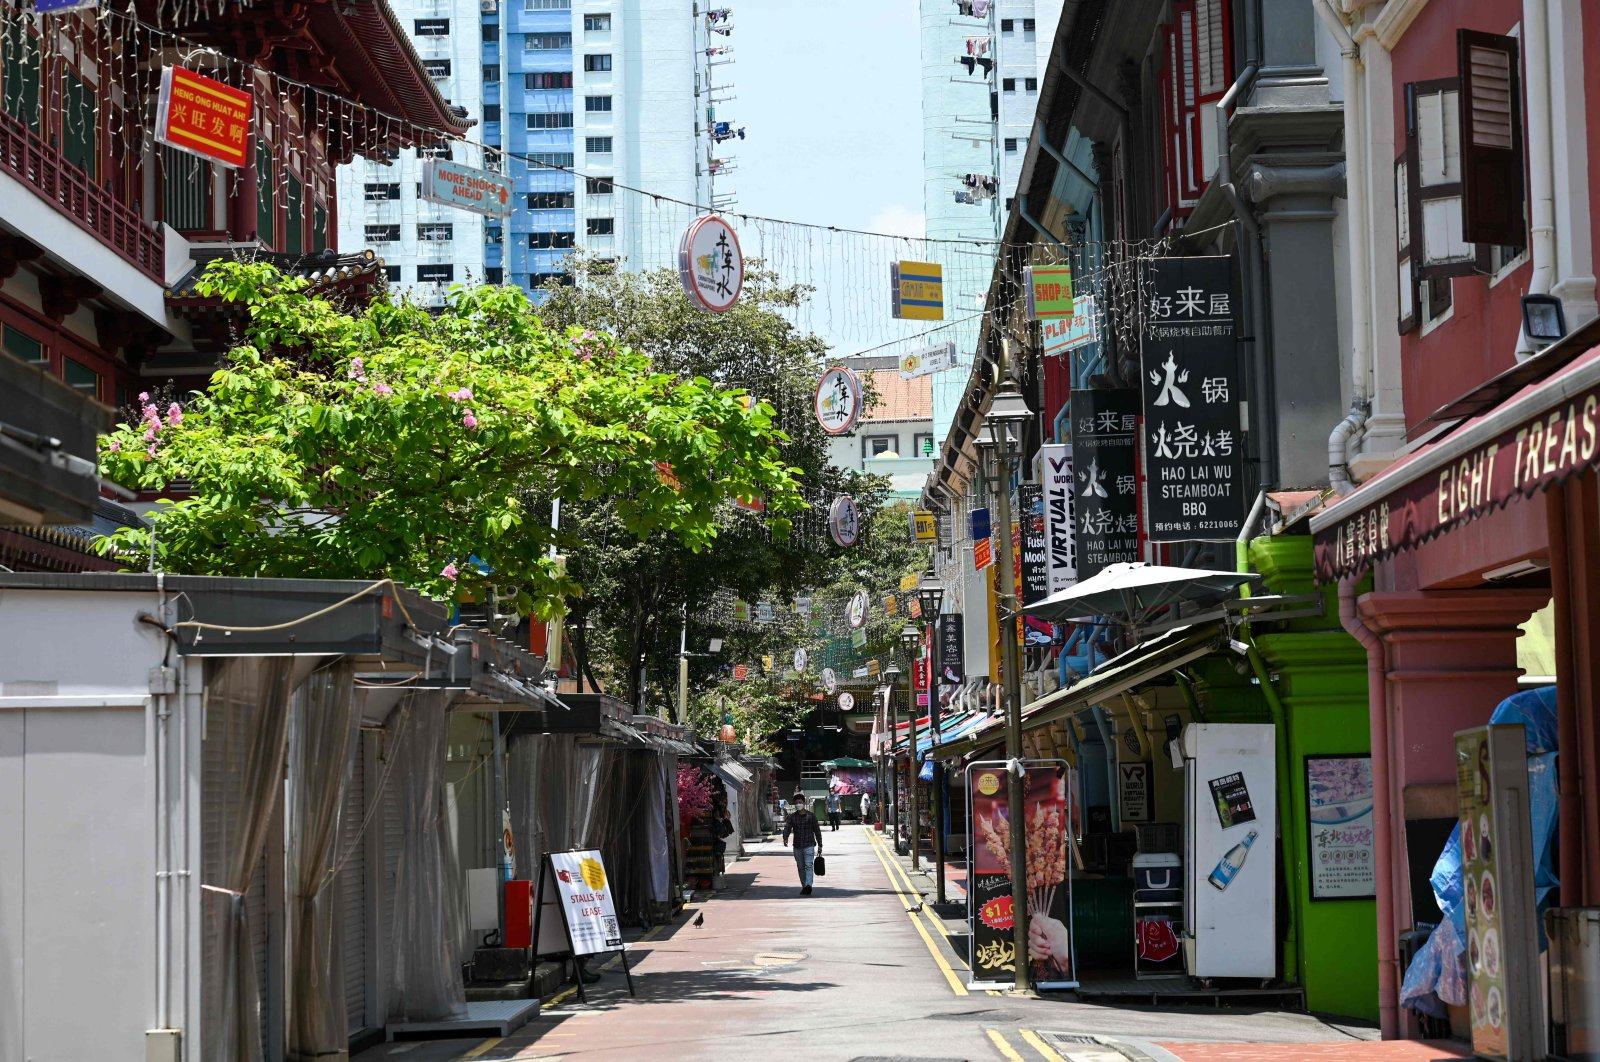 A quiet street in the Chinatown district in Singapore on Oct. 4, 2021. (AFP Photo)